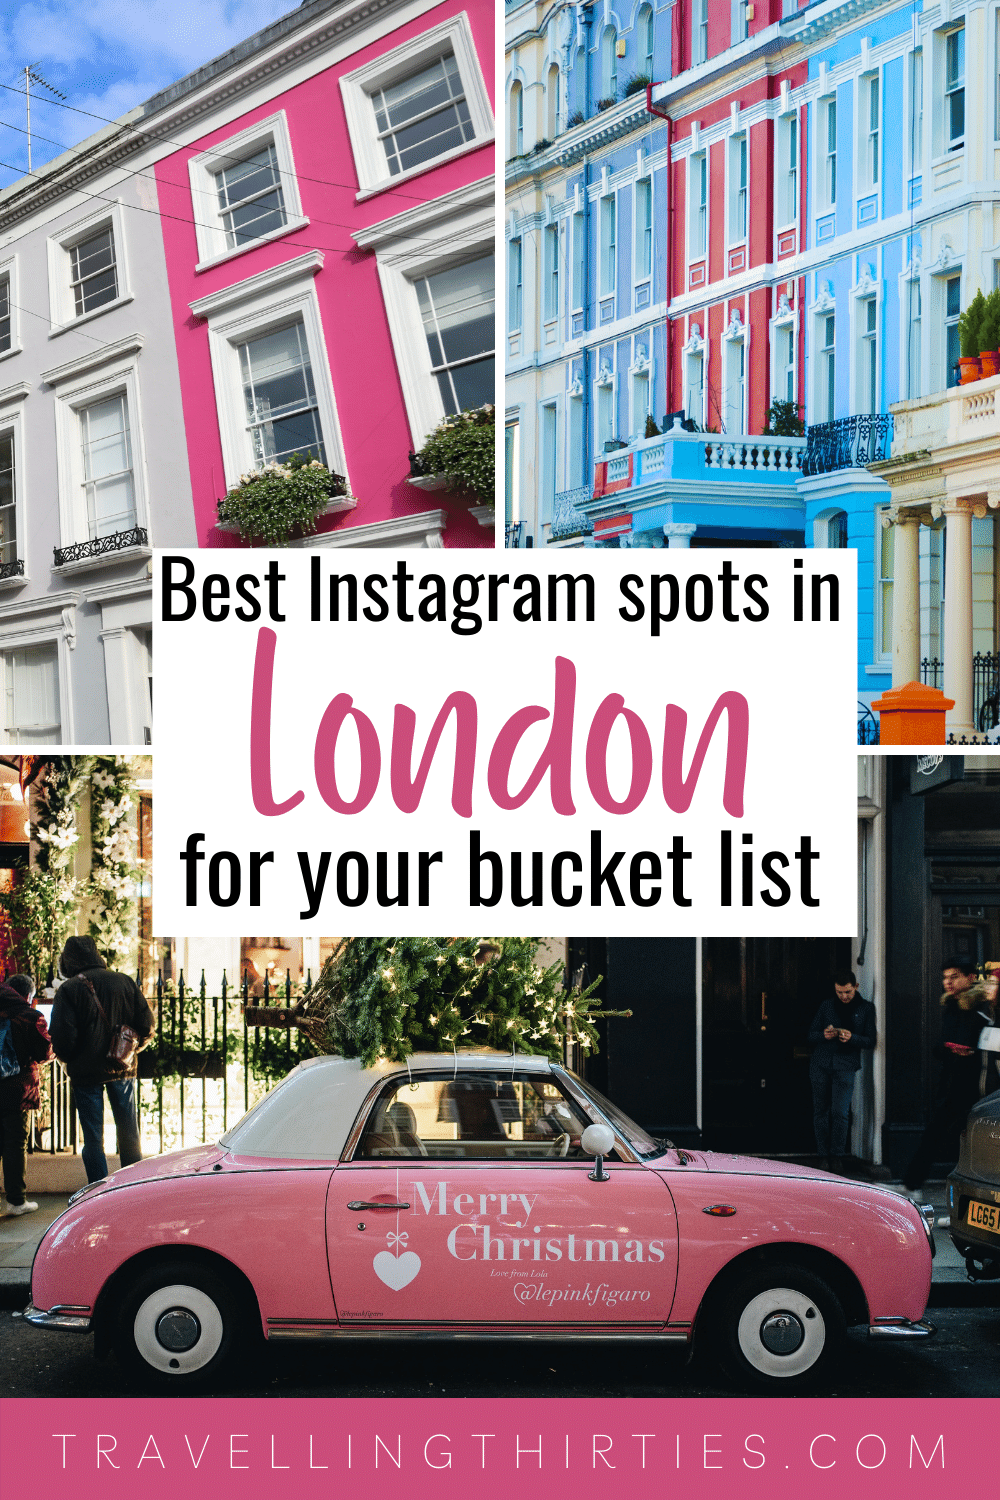 Pinterest Graphic for the most instagrammable places in London